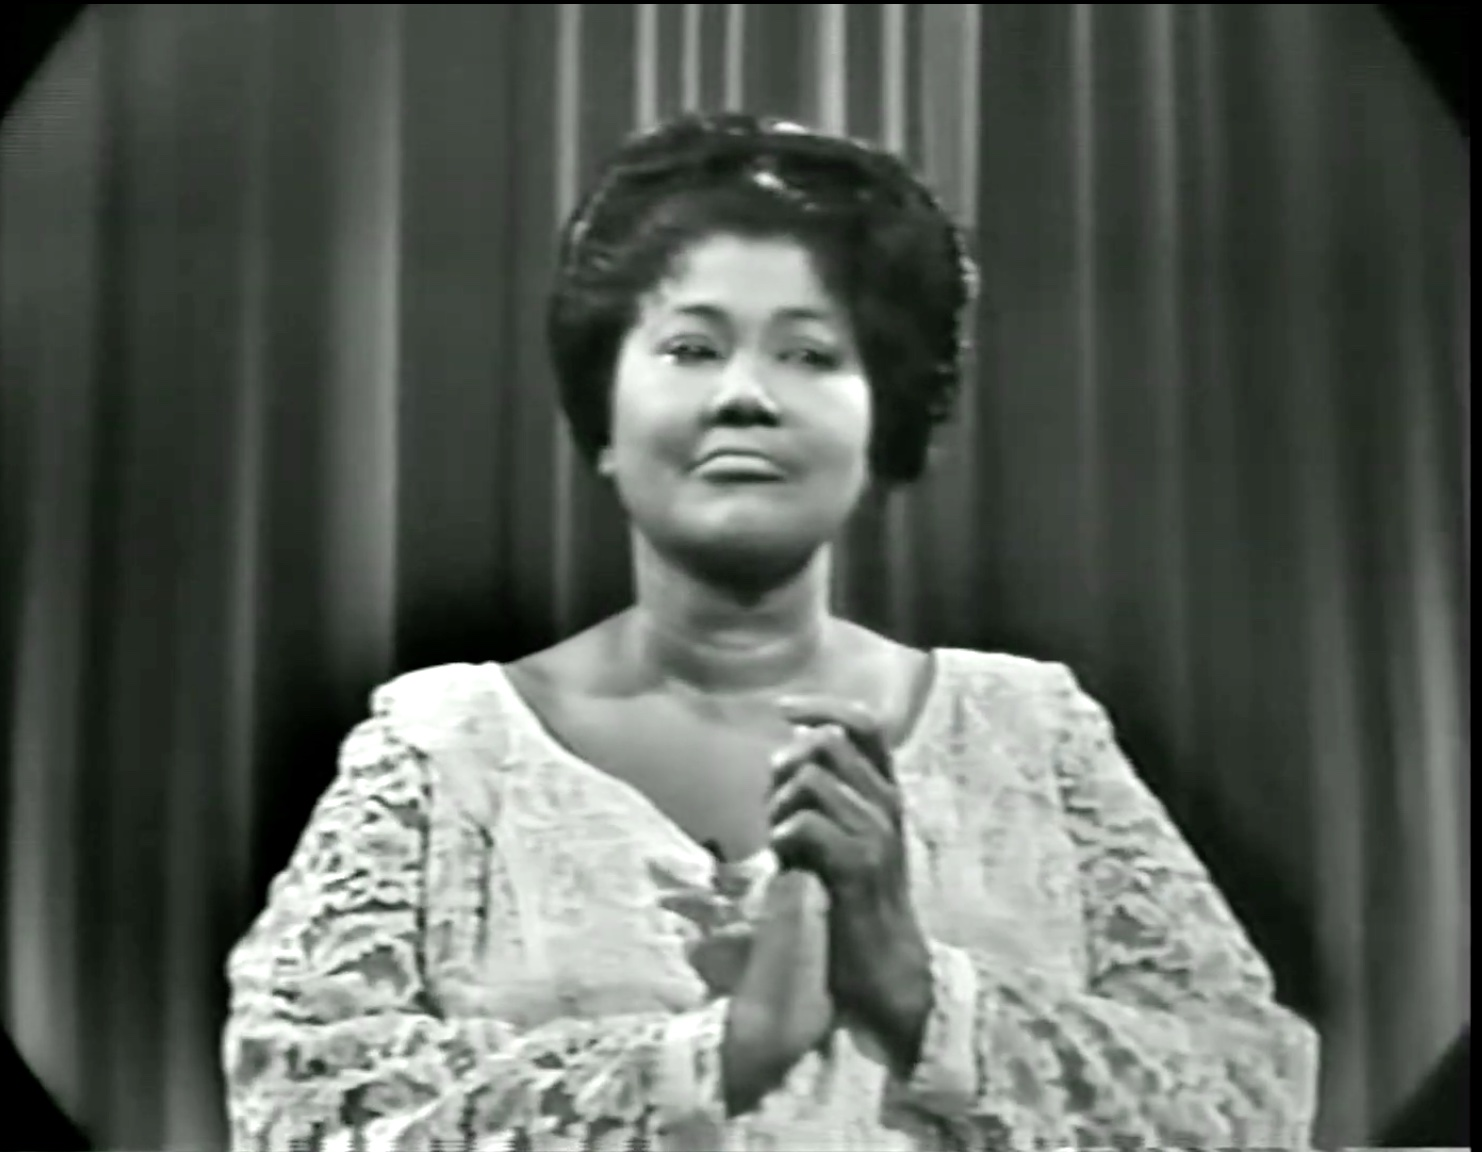 Mahalia Jackson singing 'Come On, Children' and 'I Asked the Lord',